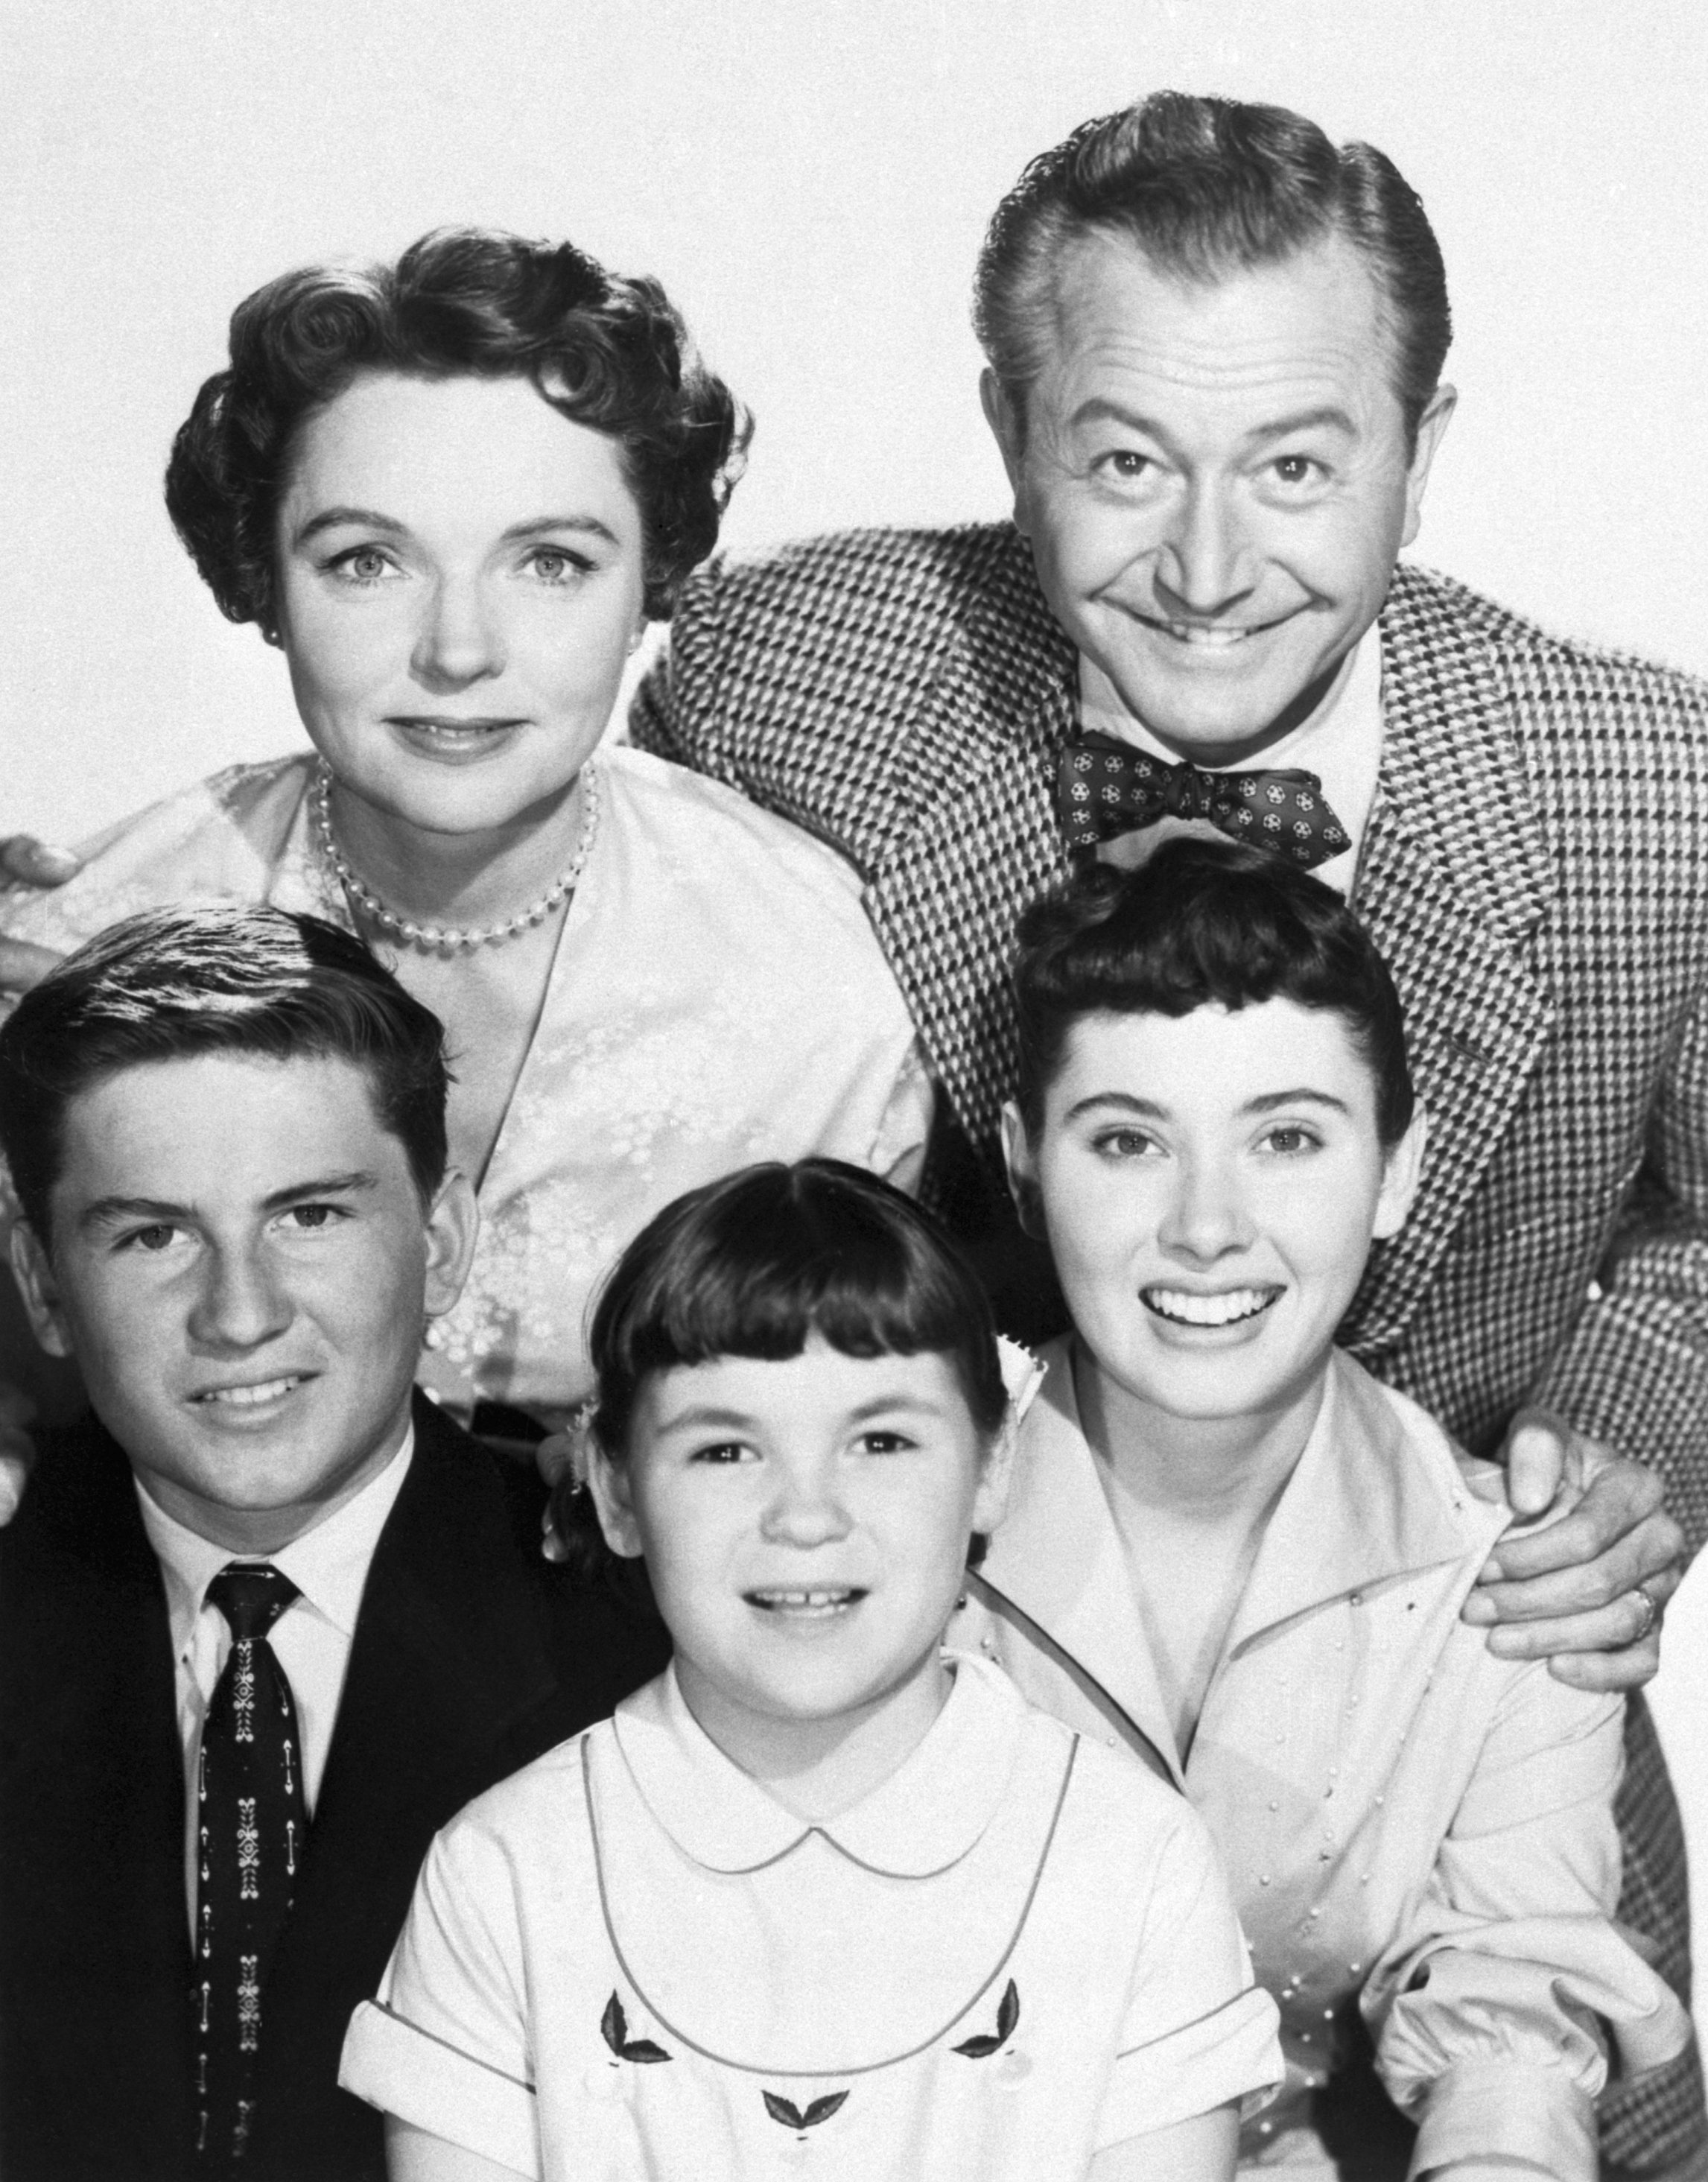 """Robert Young and Jane Wyatt with the TV family from the show """"Father Knows Best"""" circa 1950s. 